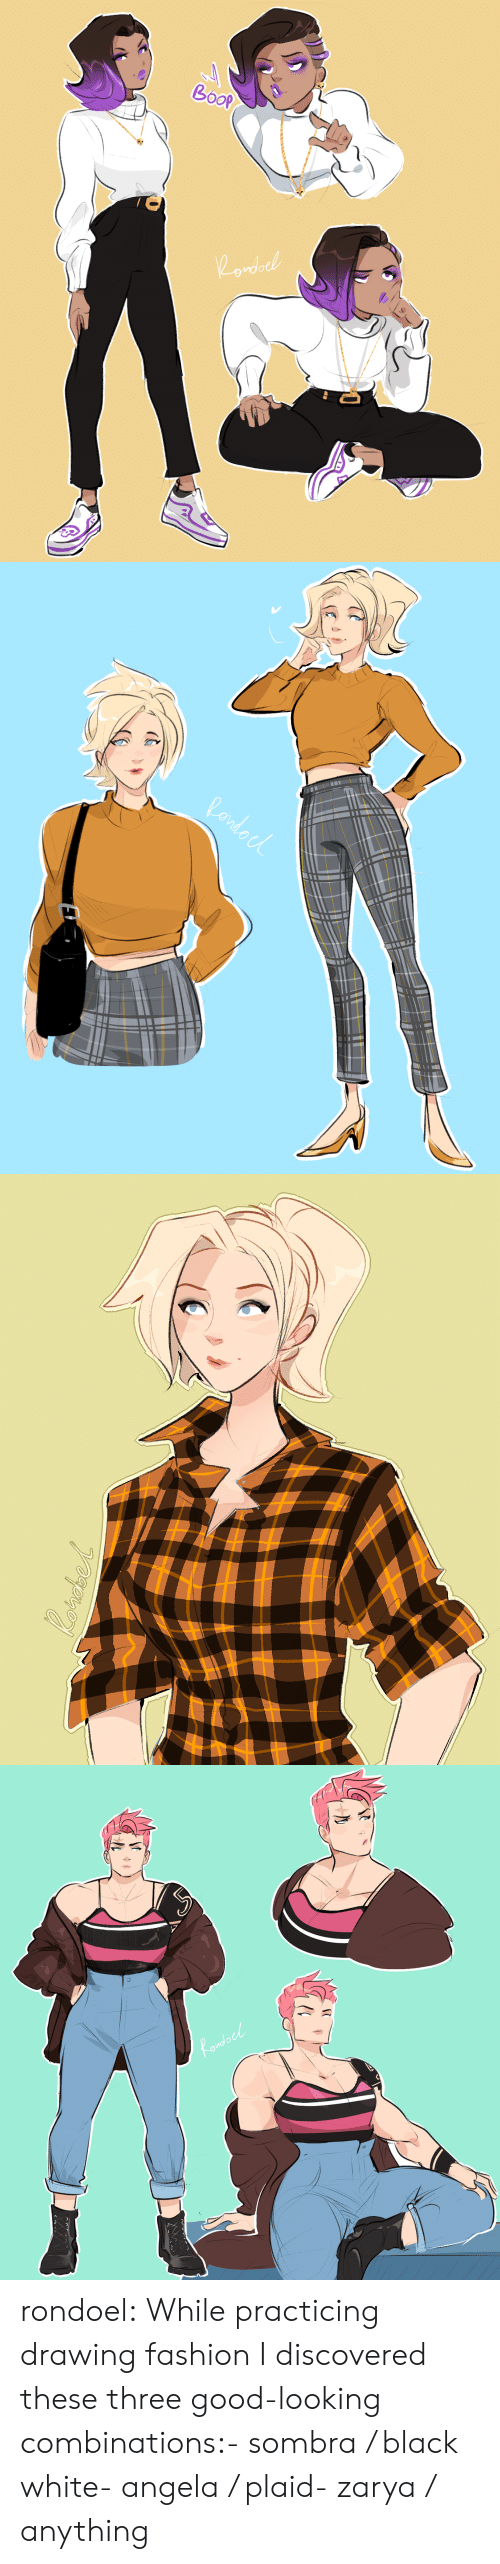 Fashion, Tumblr, and Black: do rondoel:  While practicing drawing fashion I discovered these three good-looking combinations:- sombra / black  white- angela / plaid- zarya / anything